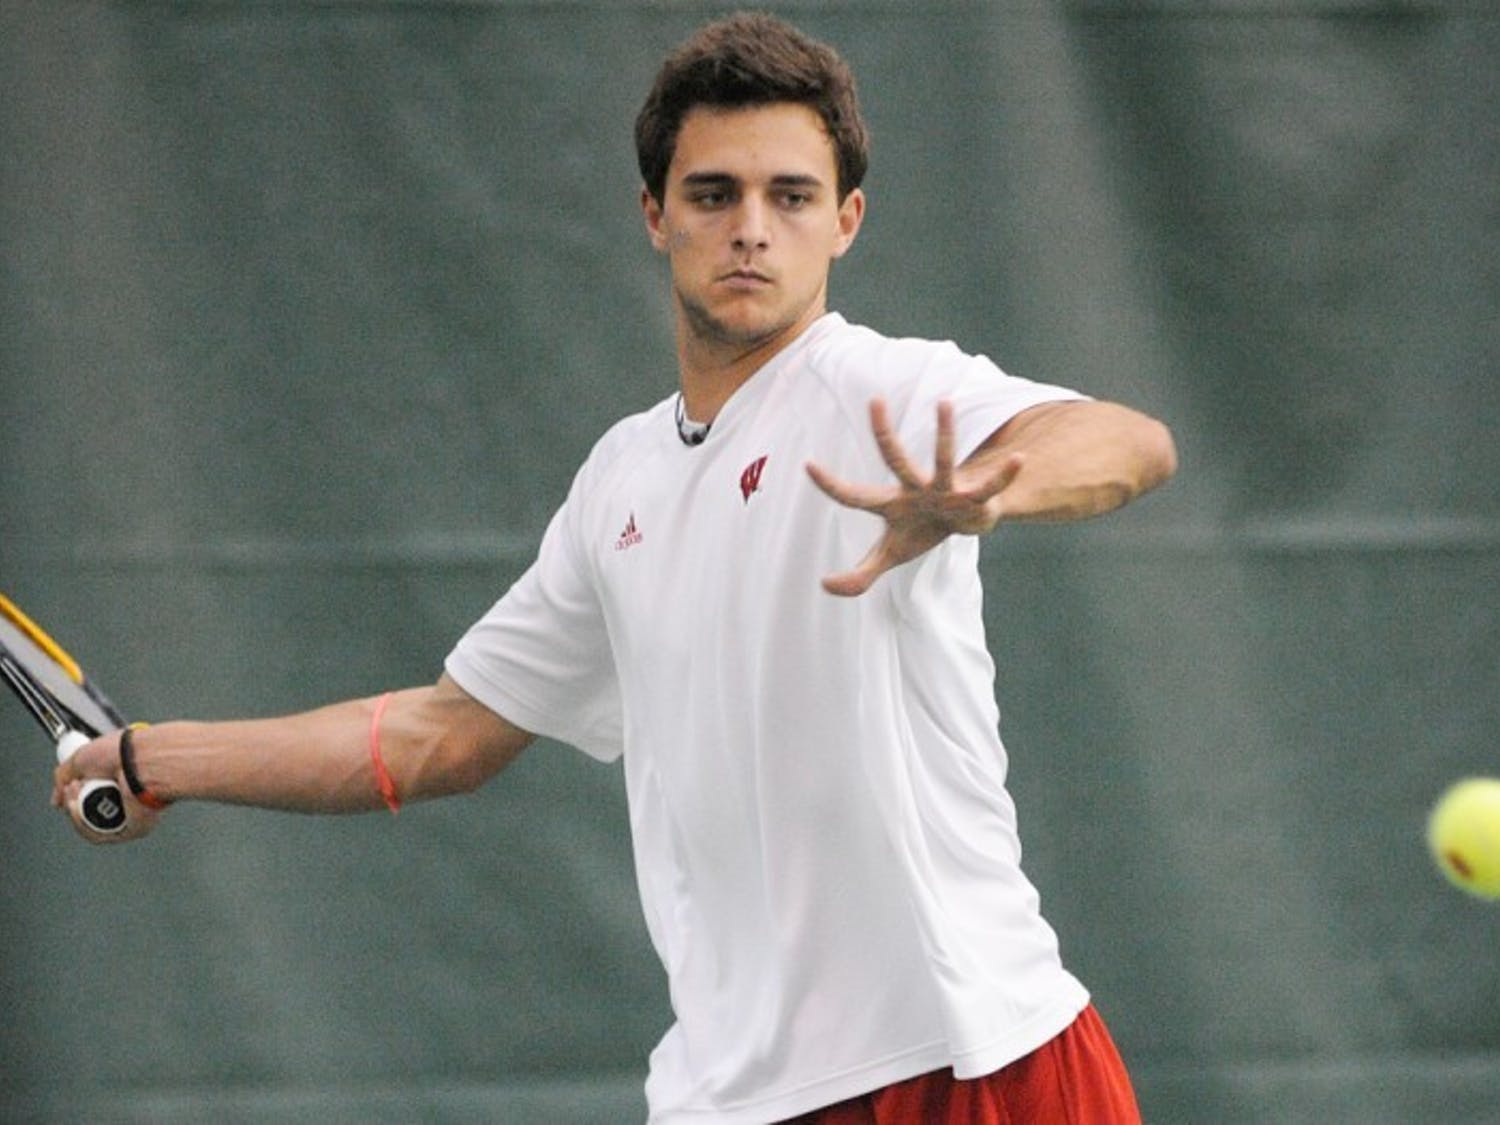 Badgers jump in rankings after weekend wins over SMU, UIC